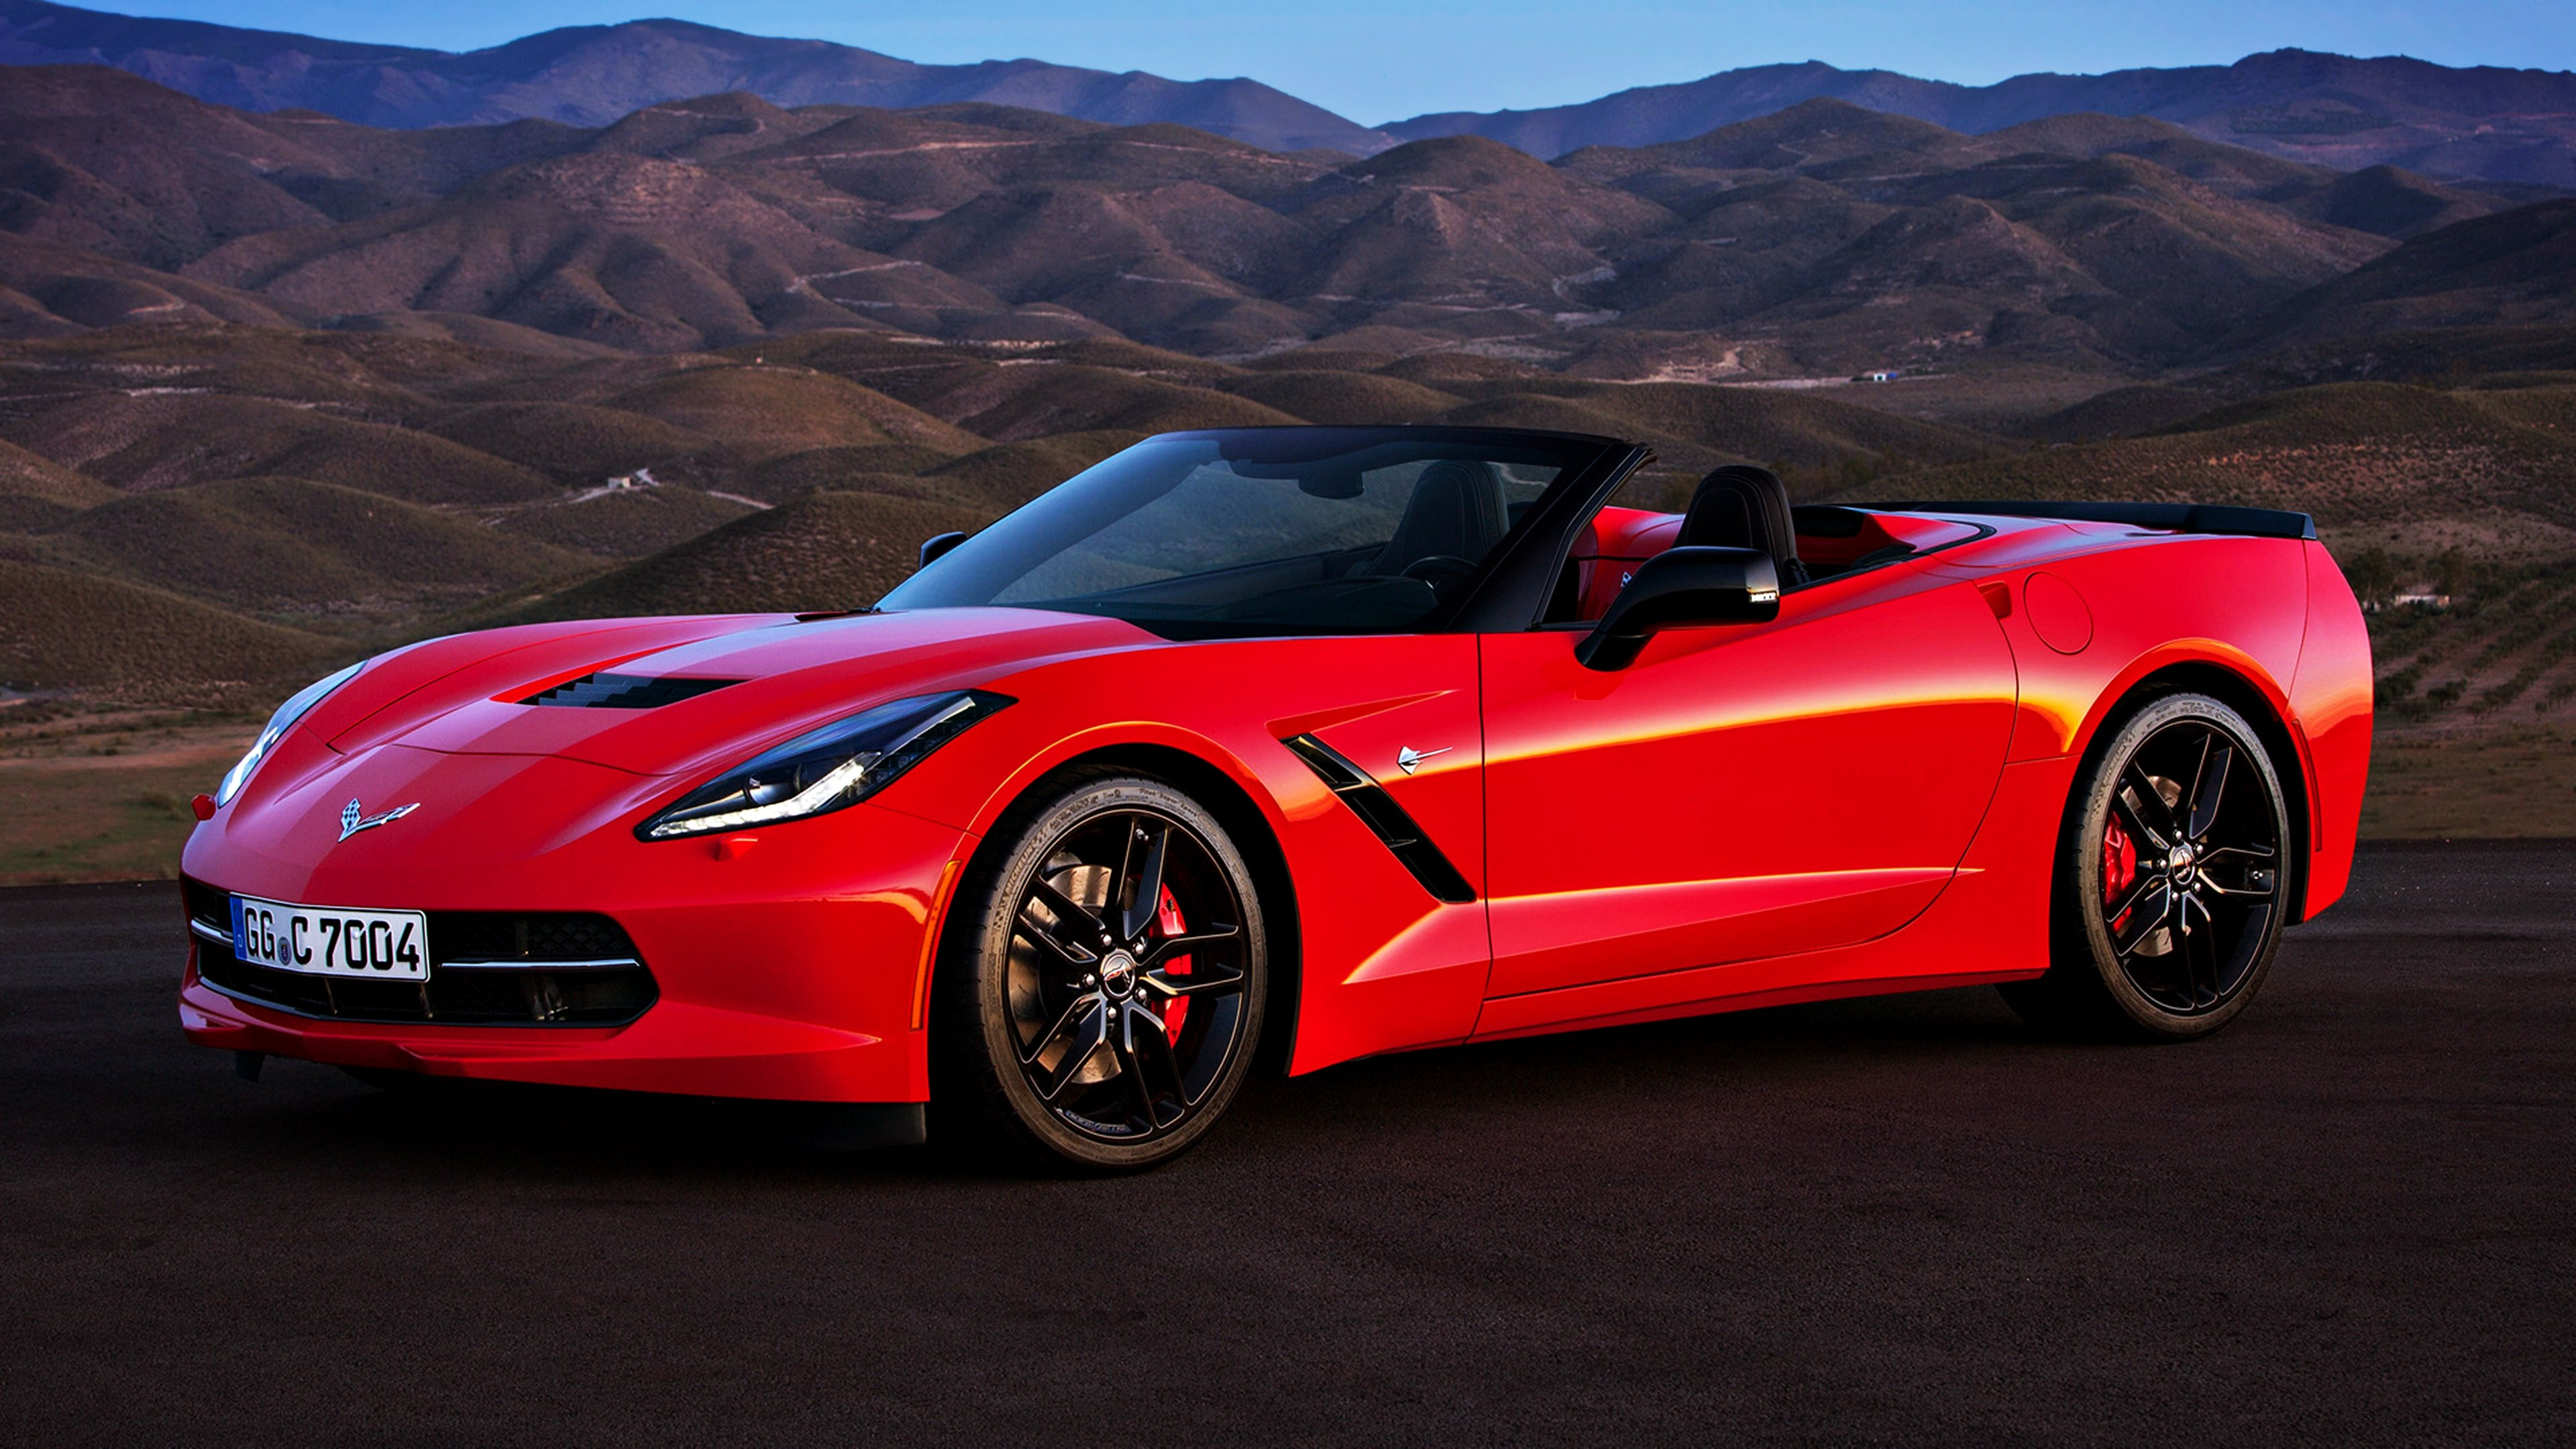 2013 chevrolet corvette stingray convertible eu supercars cars red road landscapes earth motors. Black Bedroom Furniture Sets. Home Design Ideas